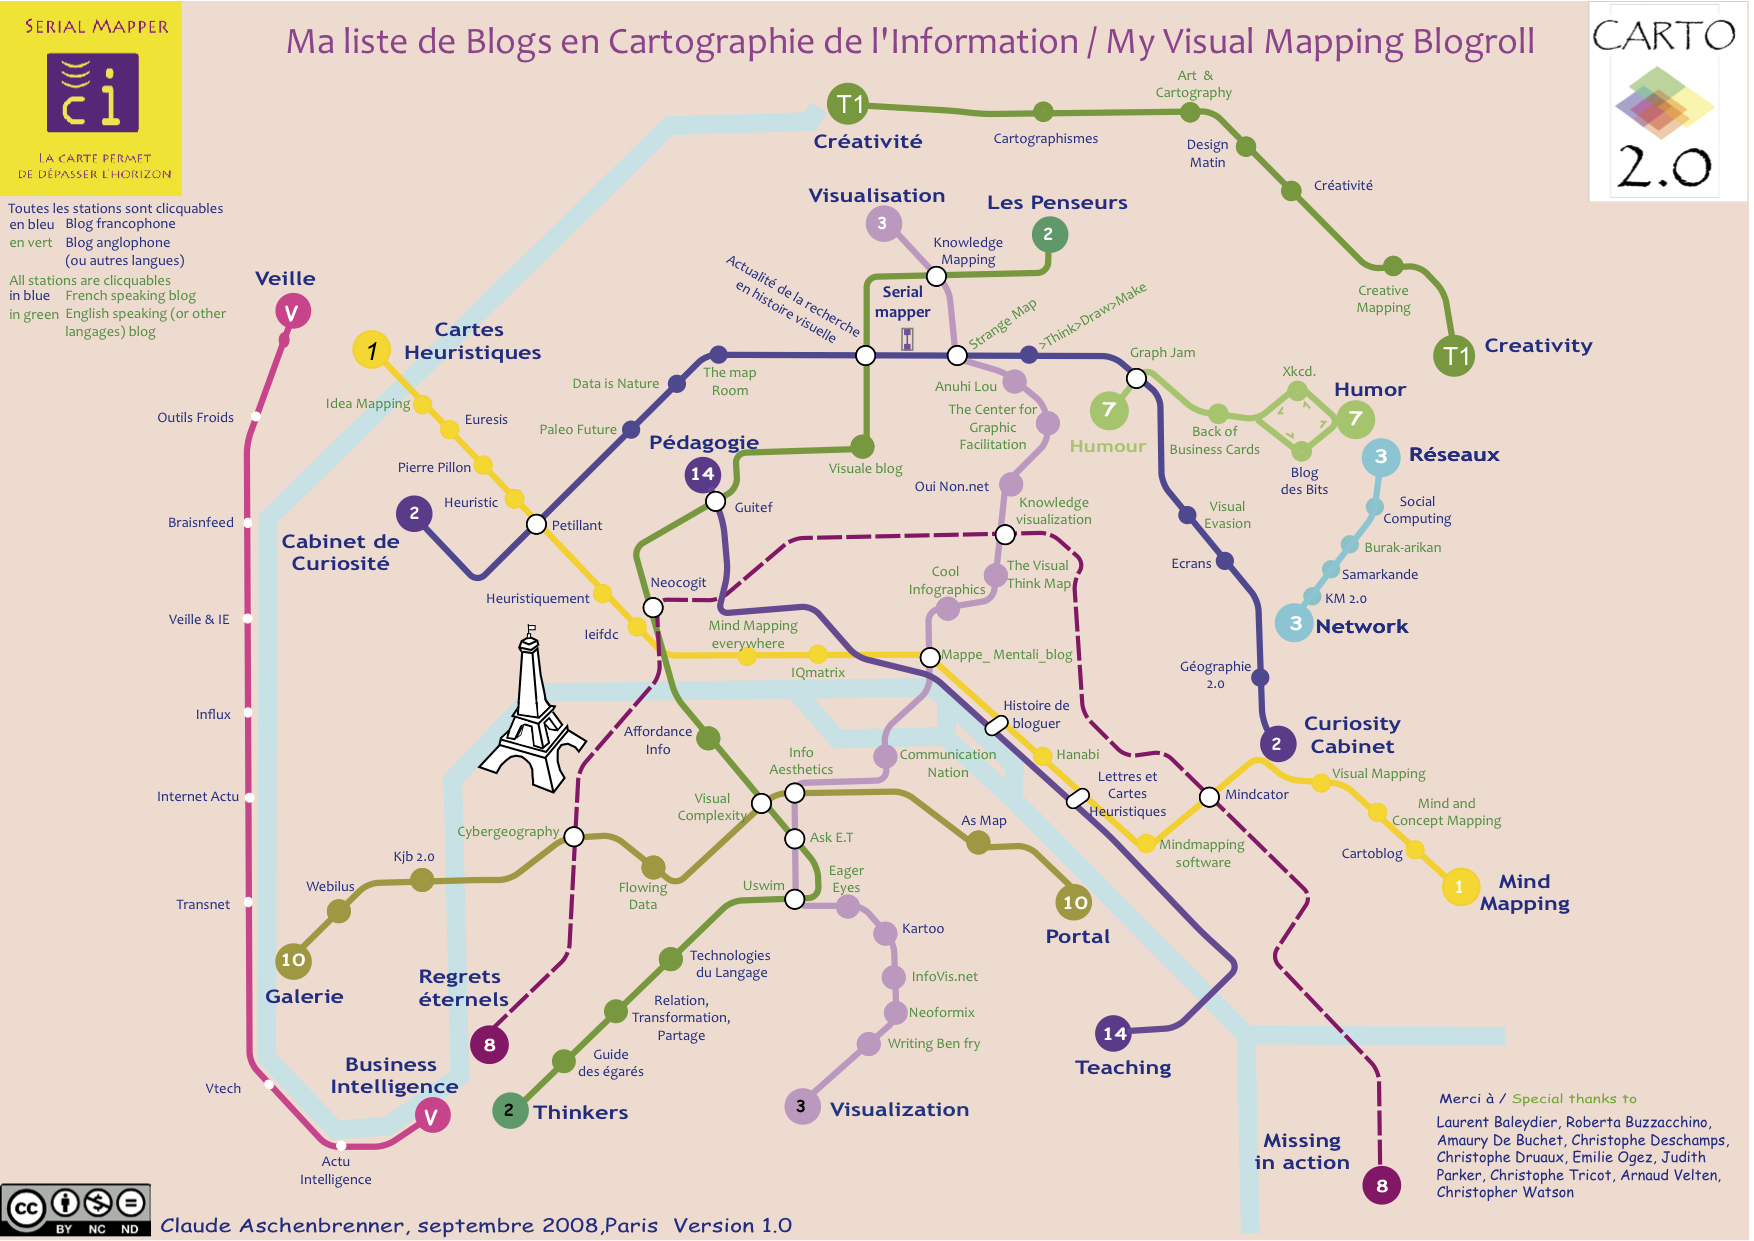 Visual Mapping Blogroll - Subway Map of Infographic